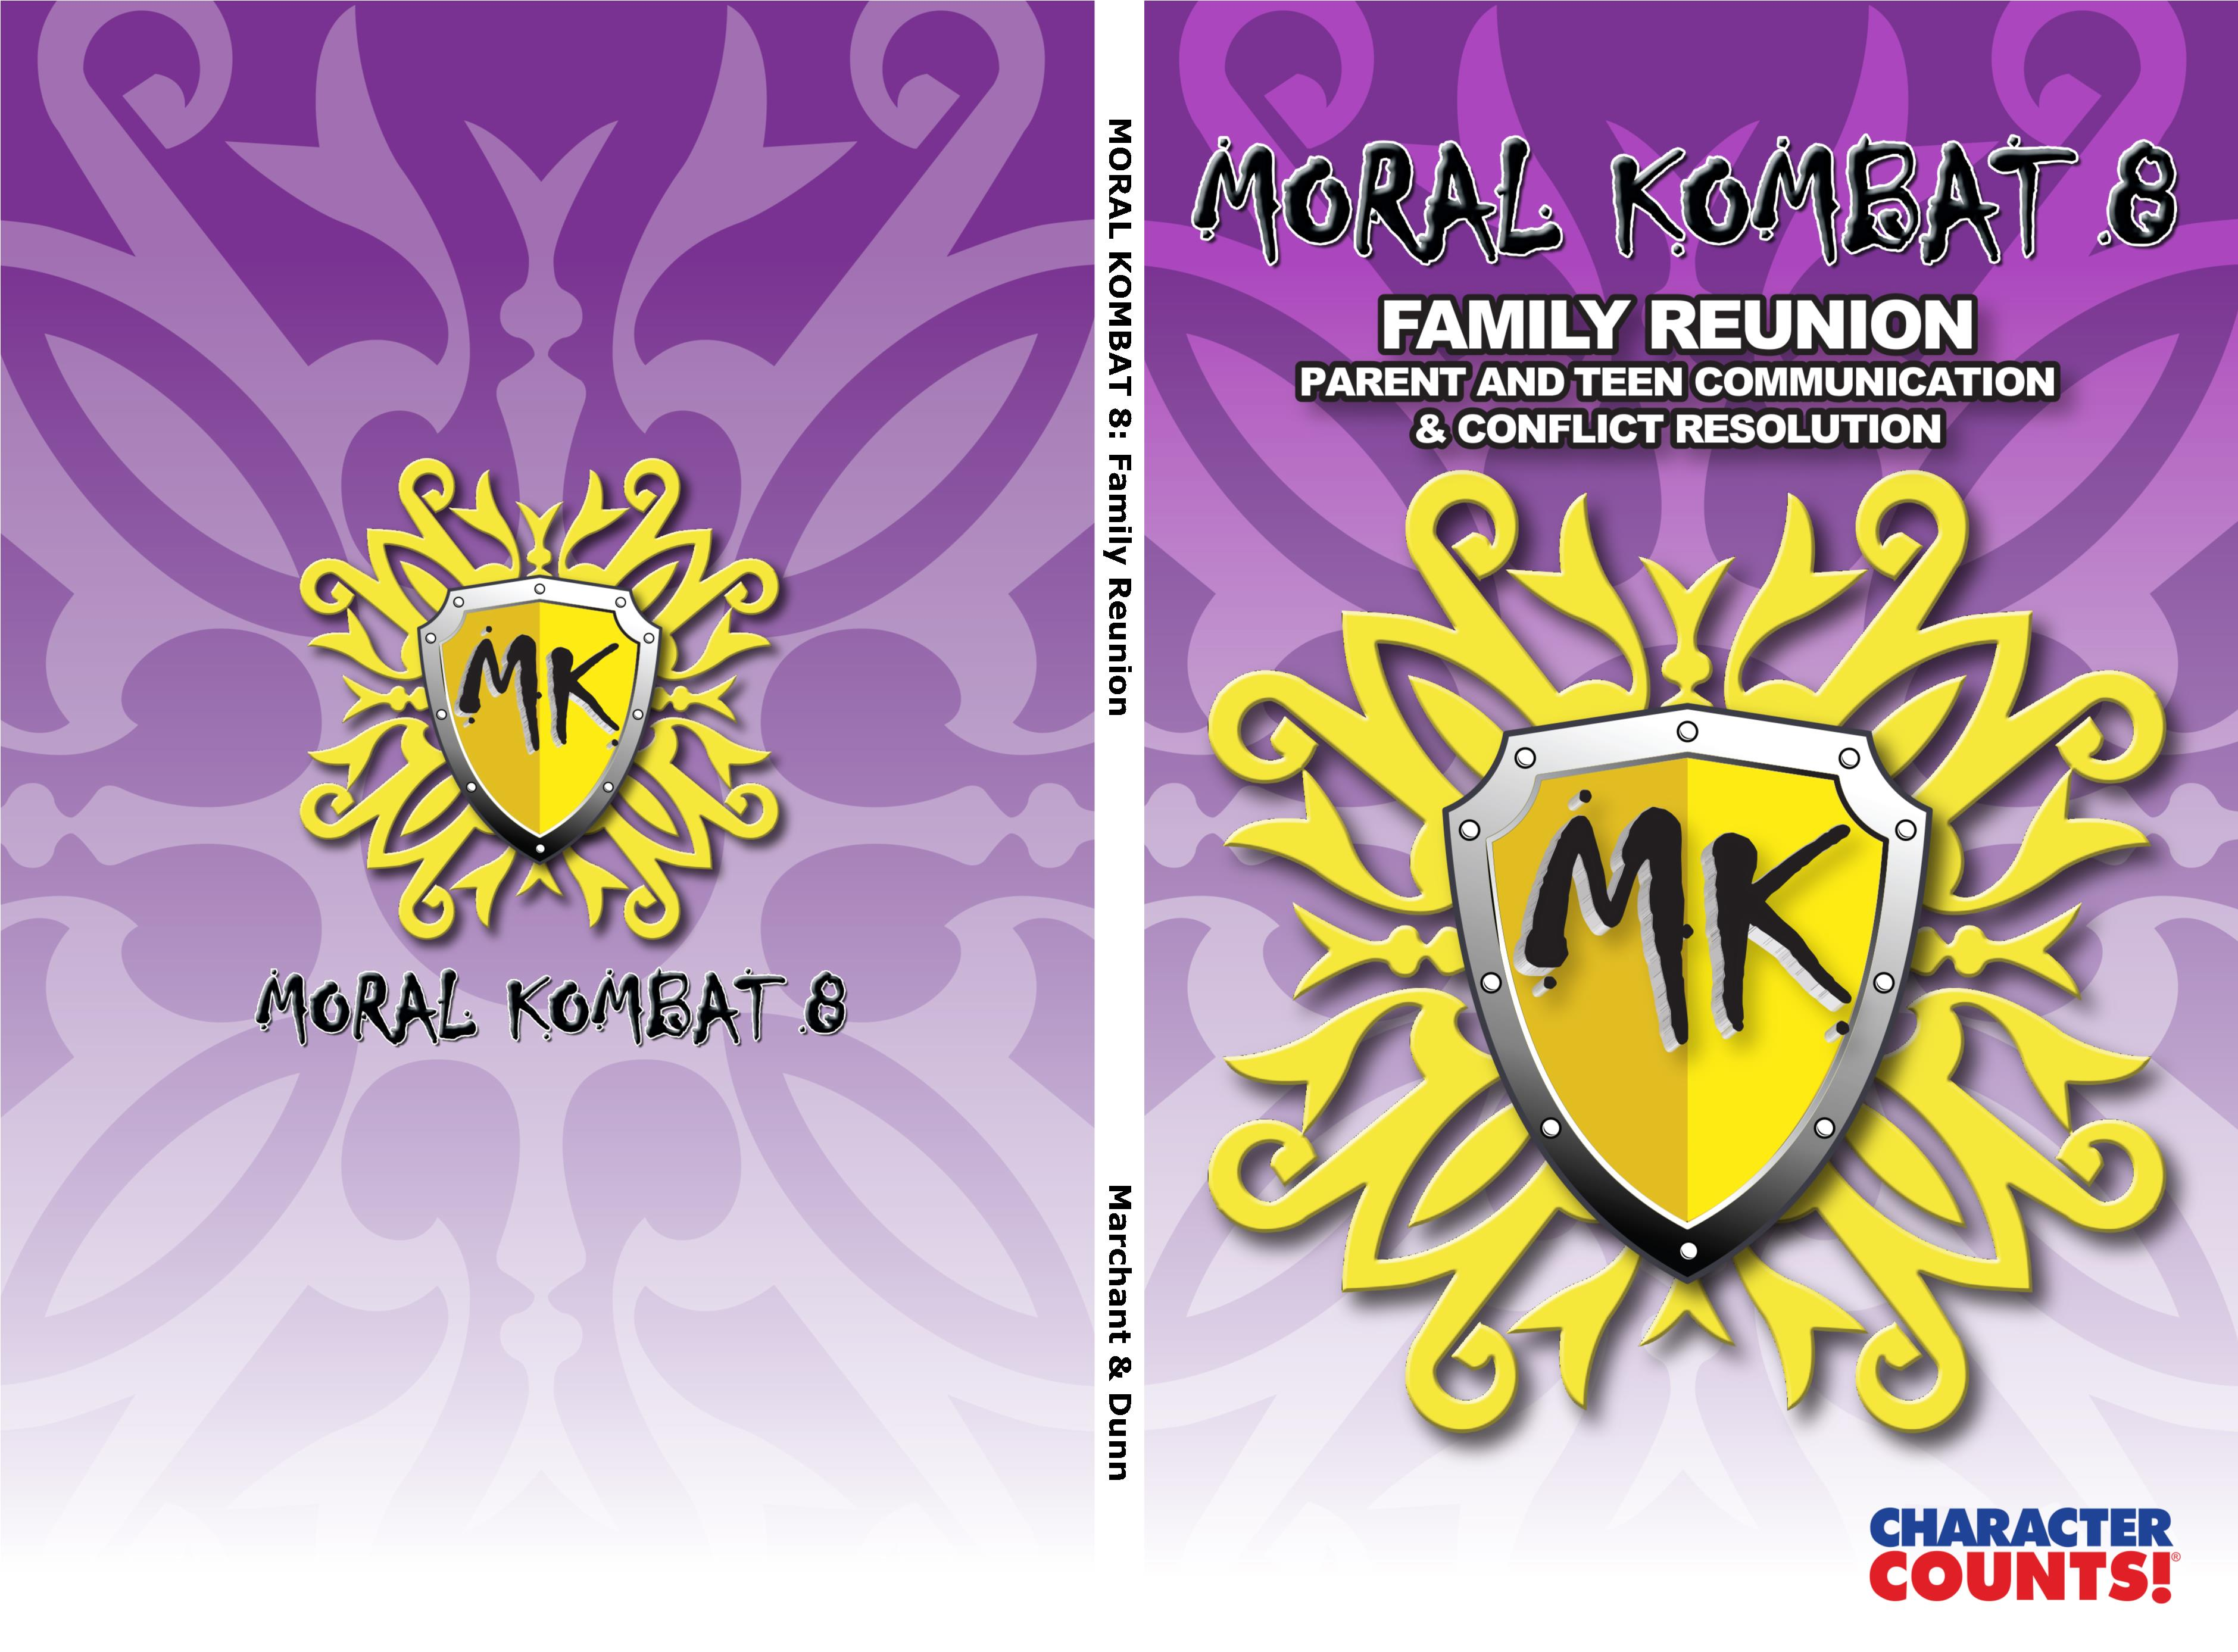 MORAL KOMBAT 8 Family Reunion: Parent and Teen Communication & Conflict Resolution cover image